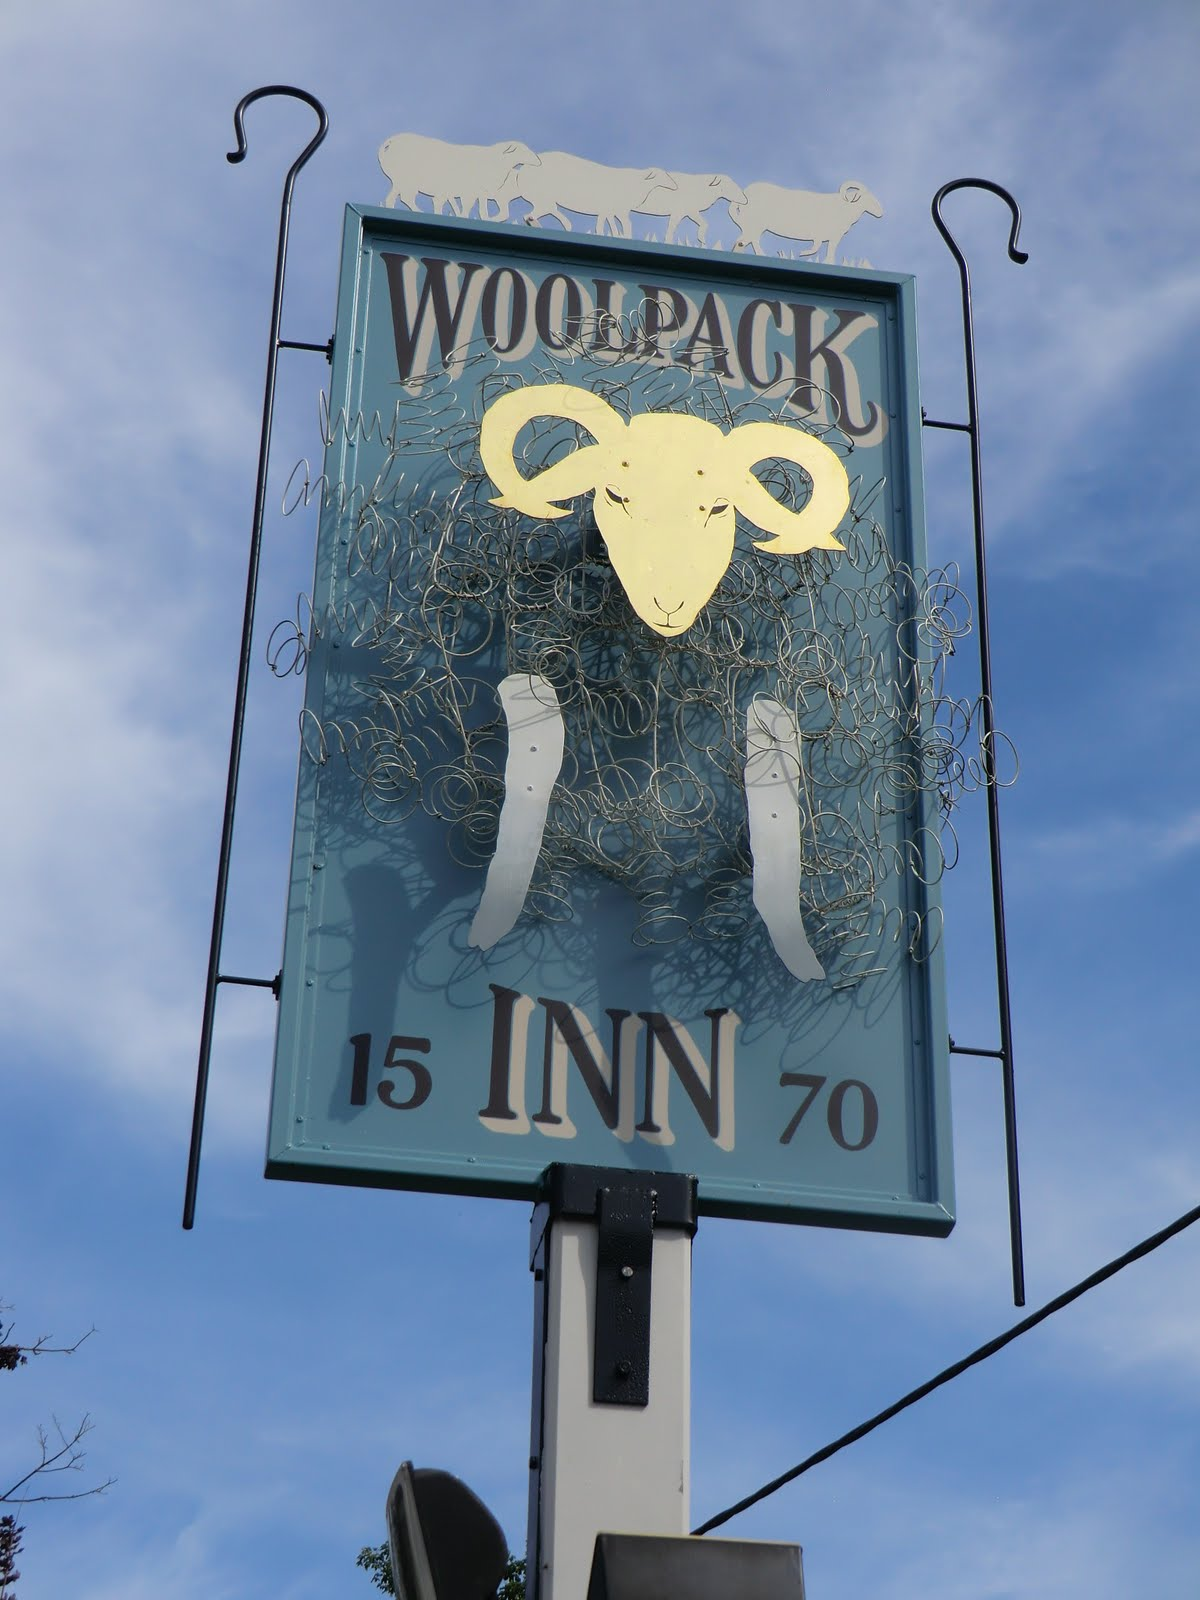 CIMG9936 Woolpack Inn sign